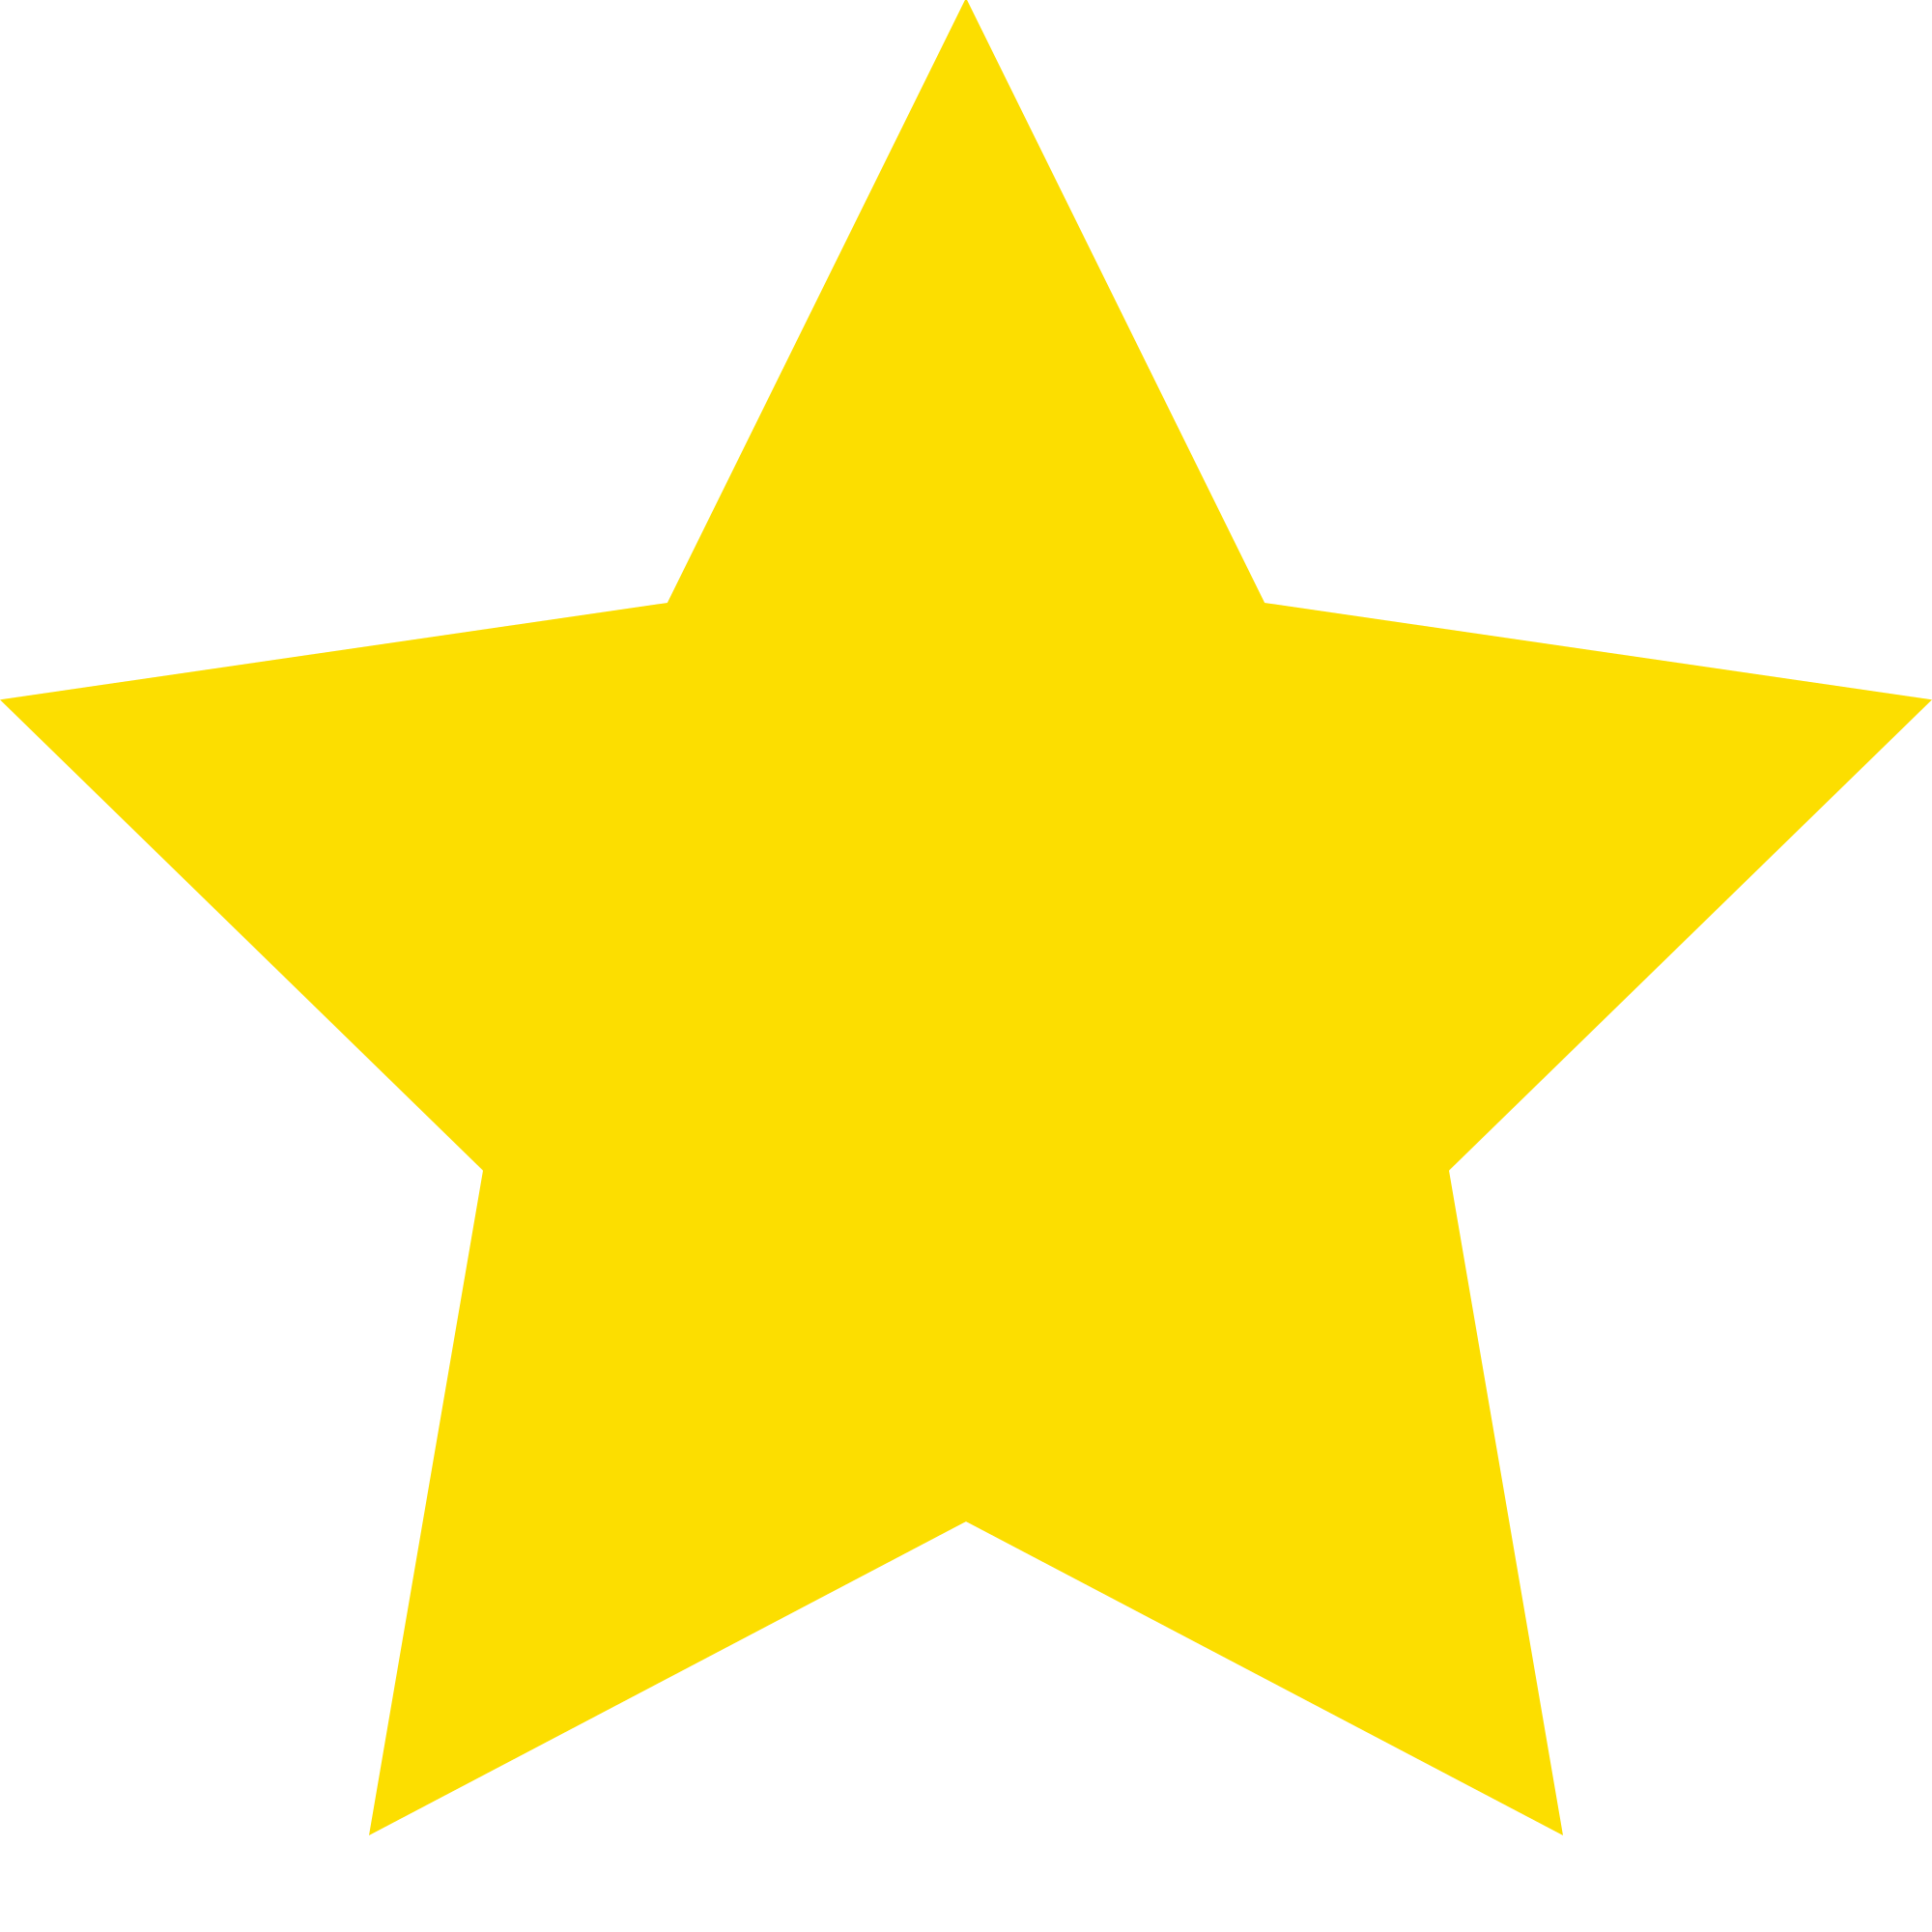 Small star clipart banner royalty free library Gold Star PNG Image - PurePNG | Free transparent CC0 PNG Image Library banner royalty free library